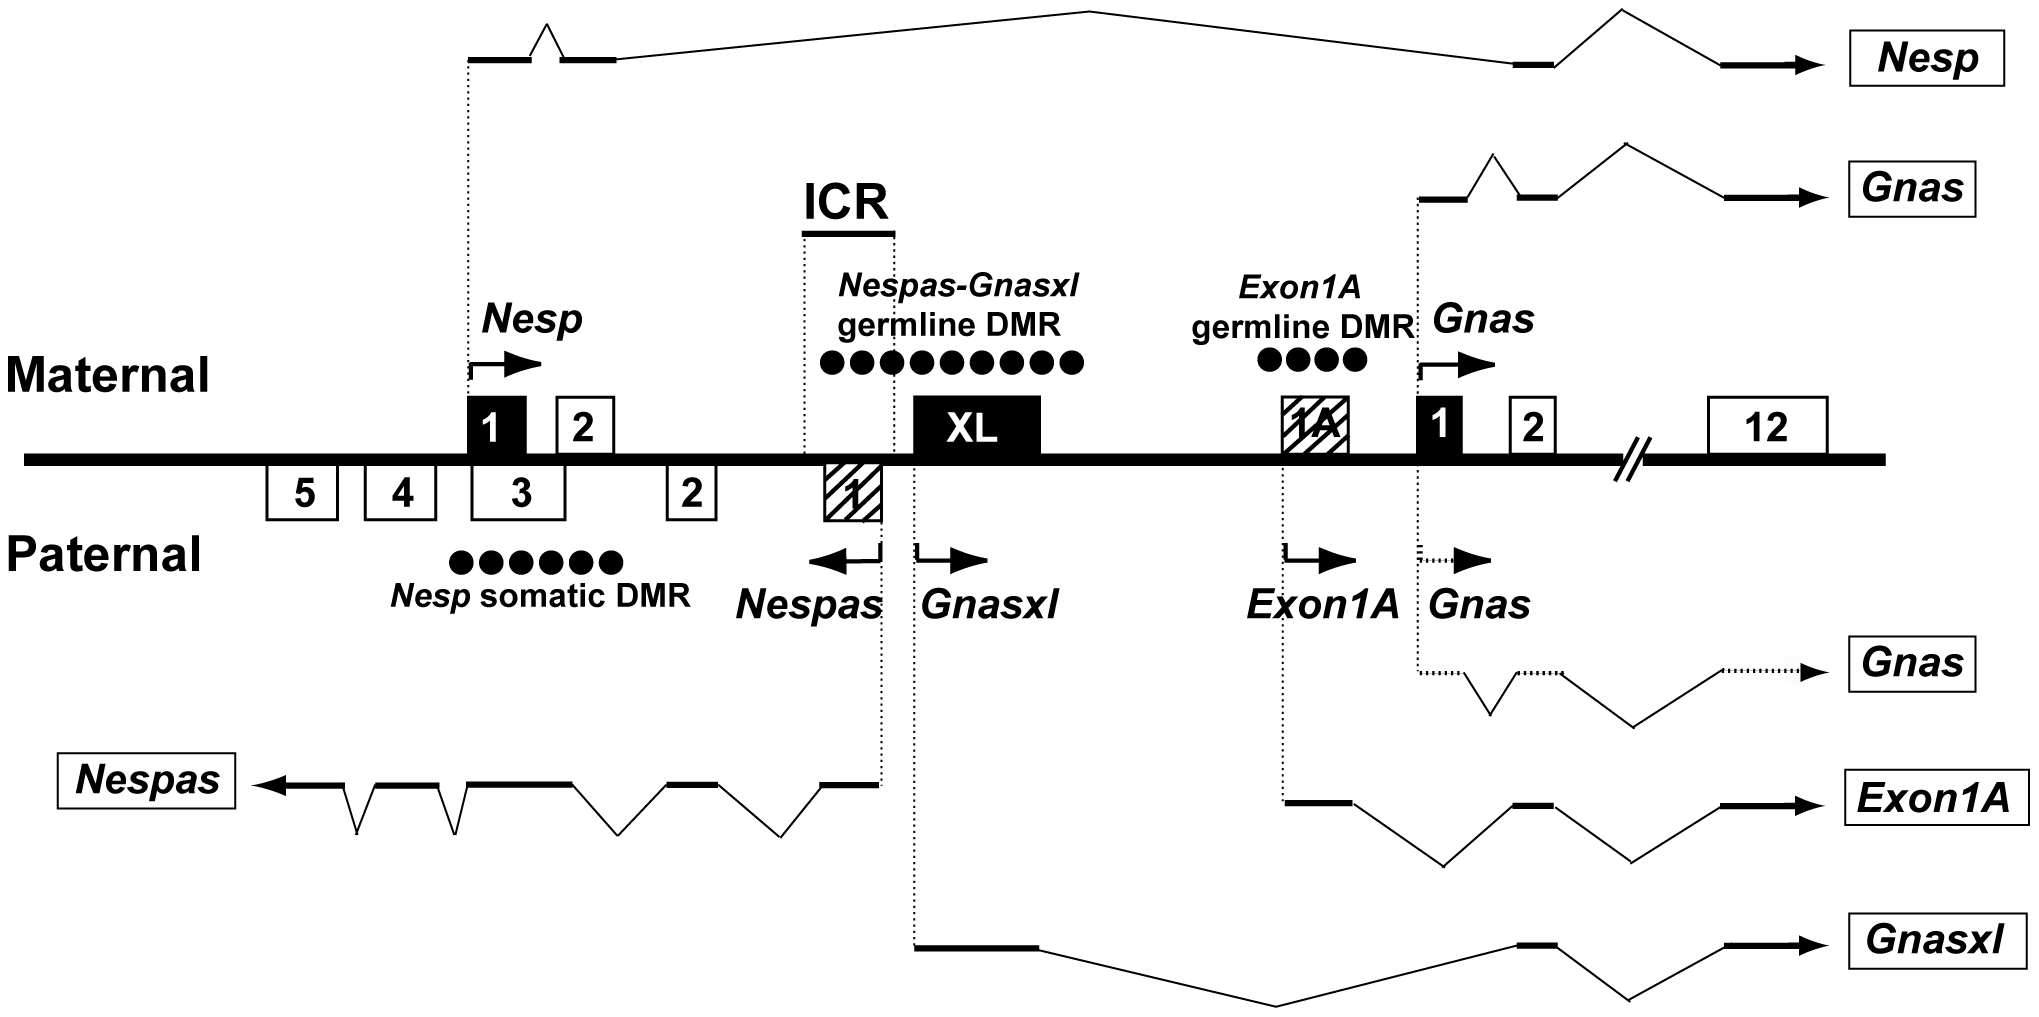 Overview of the mouse <i>Gnas</i> locus showing the organisation of the protein-coding transcripts <i>Nesp</i>, <i>Gnasxl</i>, and <i>Gnas</i> and the paternally expressed non-coding transcripts <i>Nespas</i> and <i>Exon1A</i>.